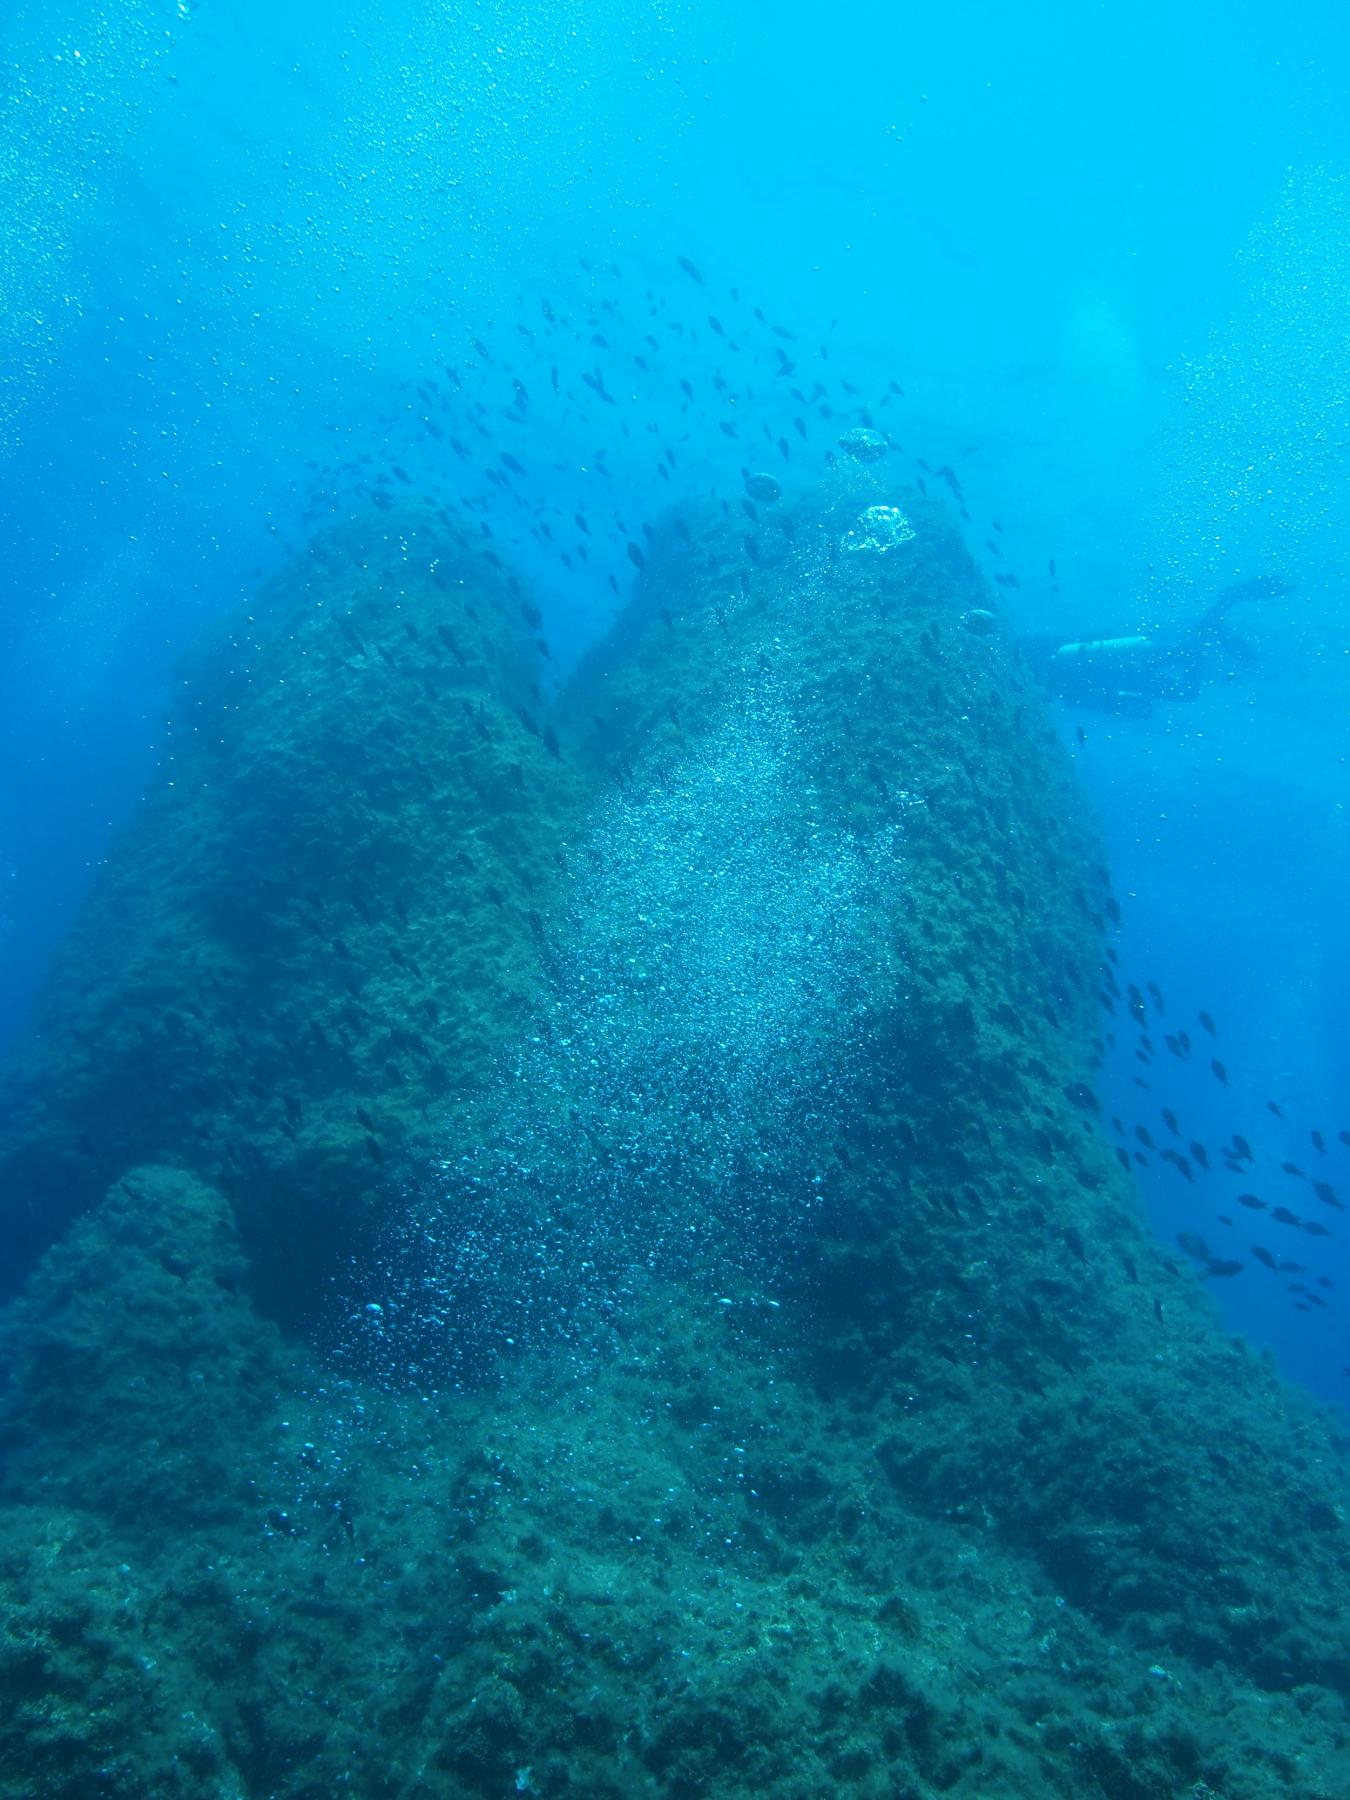 Twin peaks reef at Filfla [Toni Saloranta]